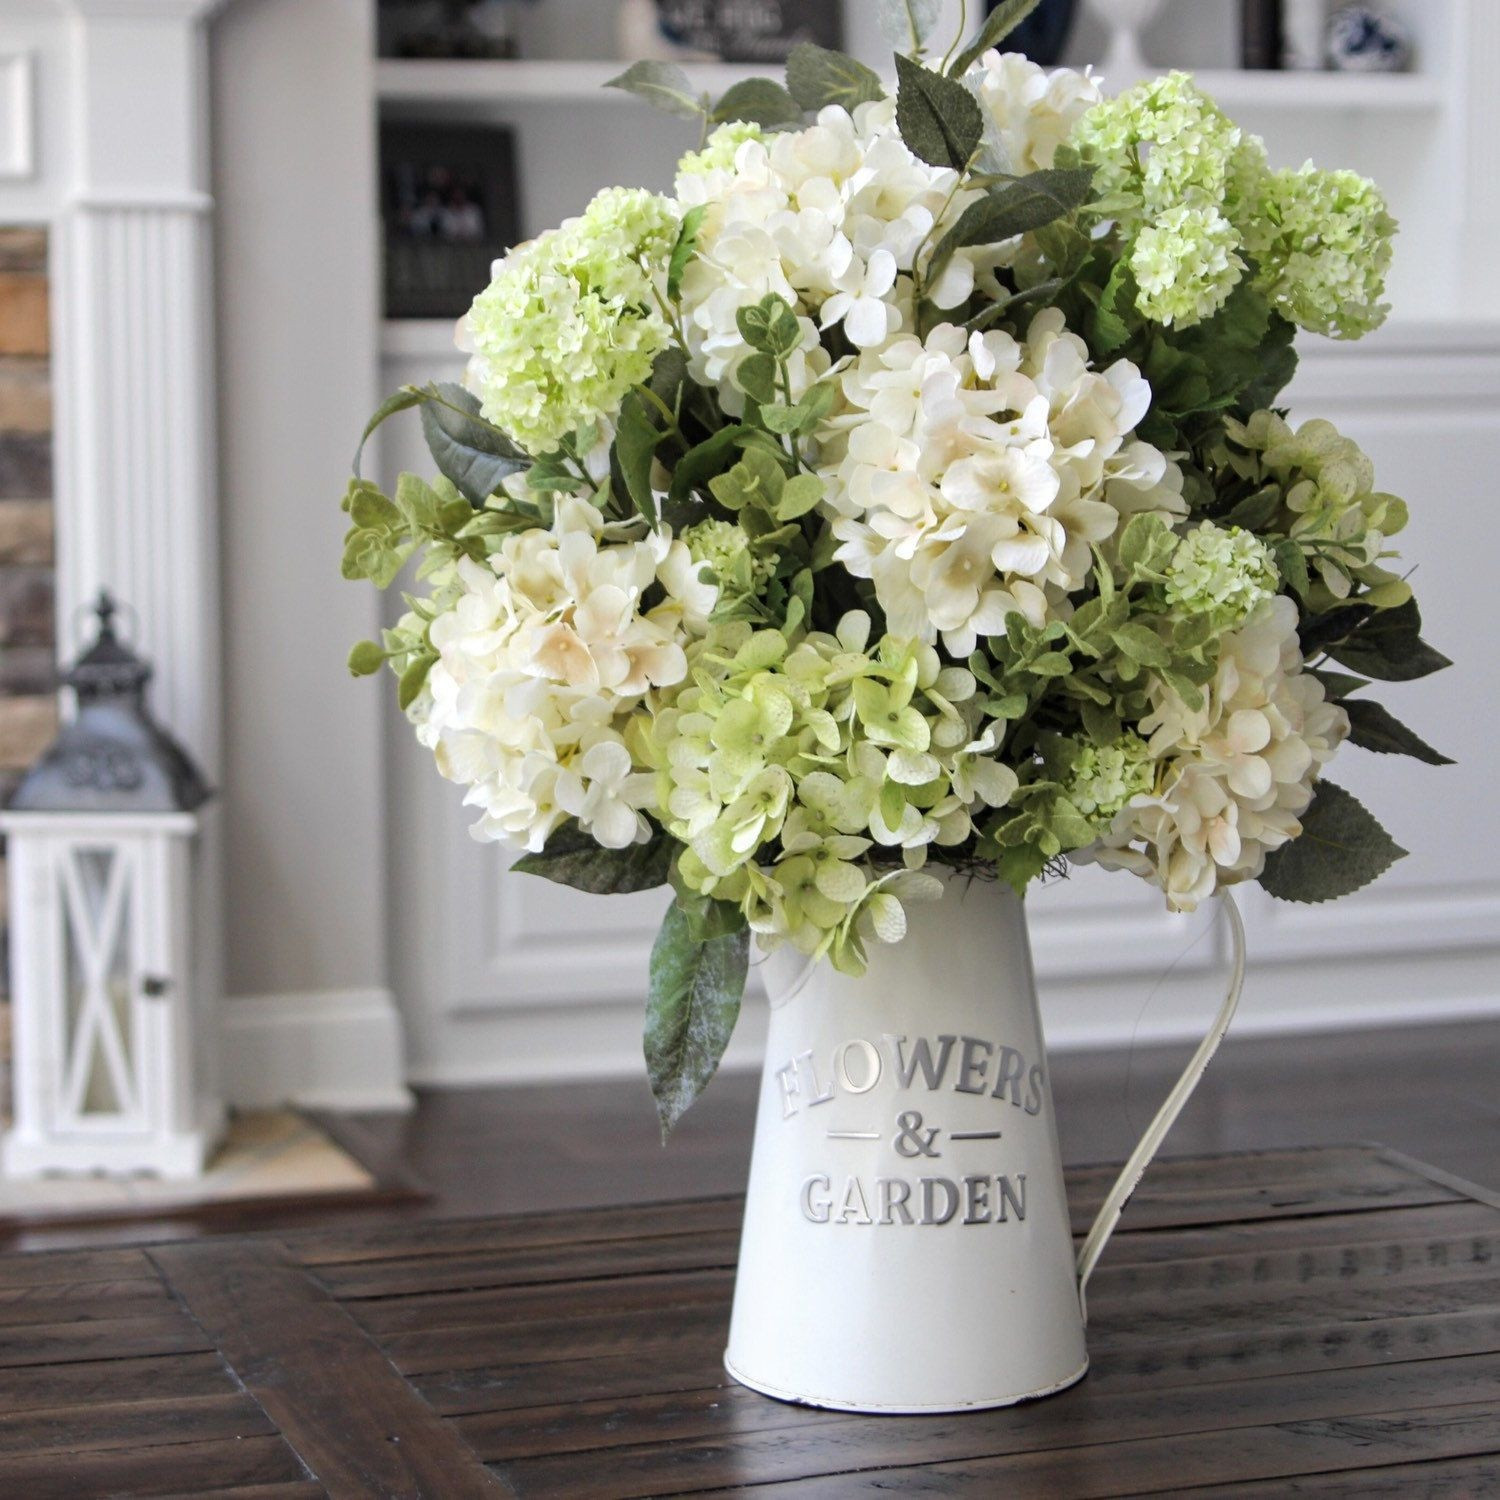 29 Stylish Wall Bud Vase 2021 free download wall bud vase of vase and flowers for living room elegant patio plants in pots ideas pertaining to vase and flowers for living room best of living room 32 artificial flower arrangements for